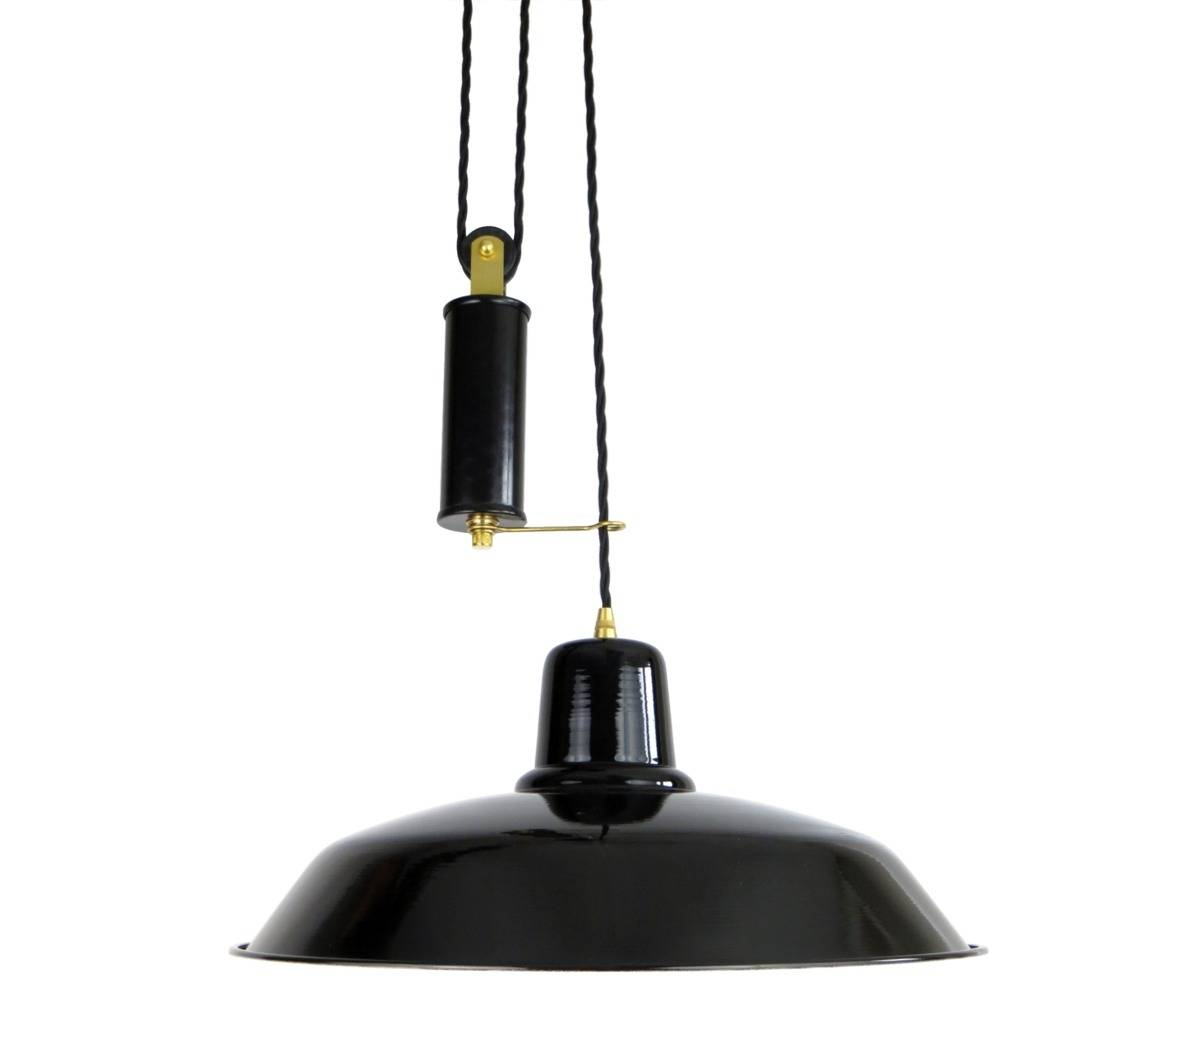 Lighting > Pendant > Rise And Fall Lights - The French House regarding Rise and Fall Pendant Lighting (Image 12 of 15)